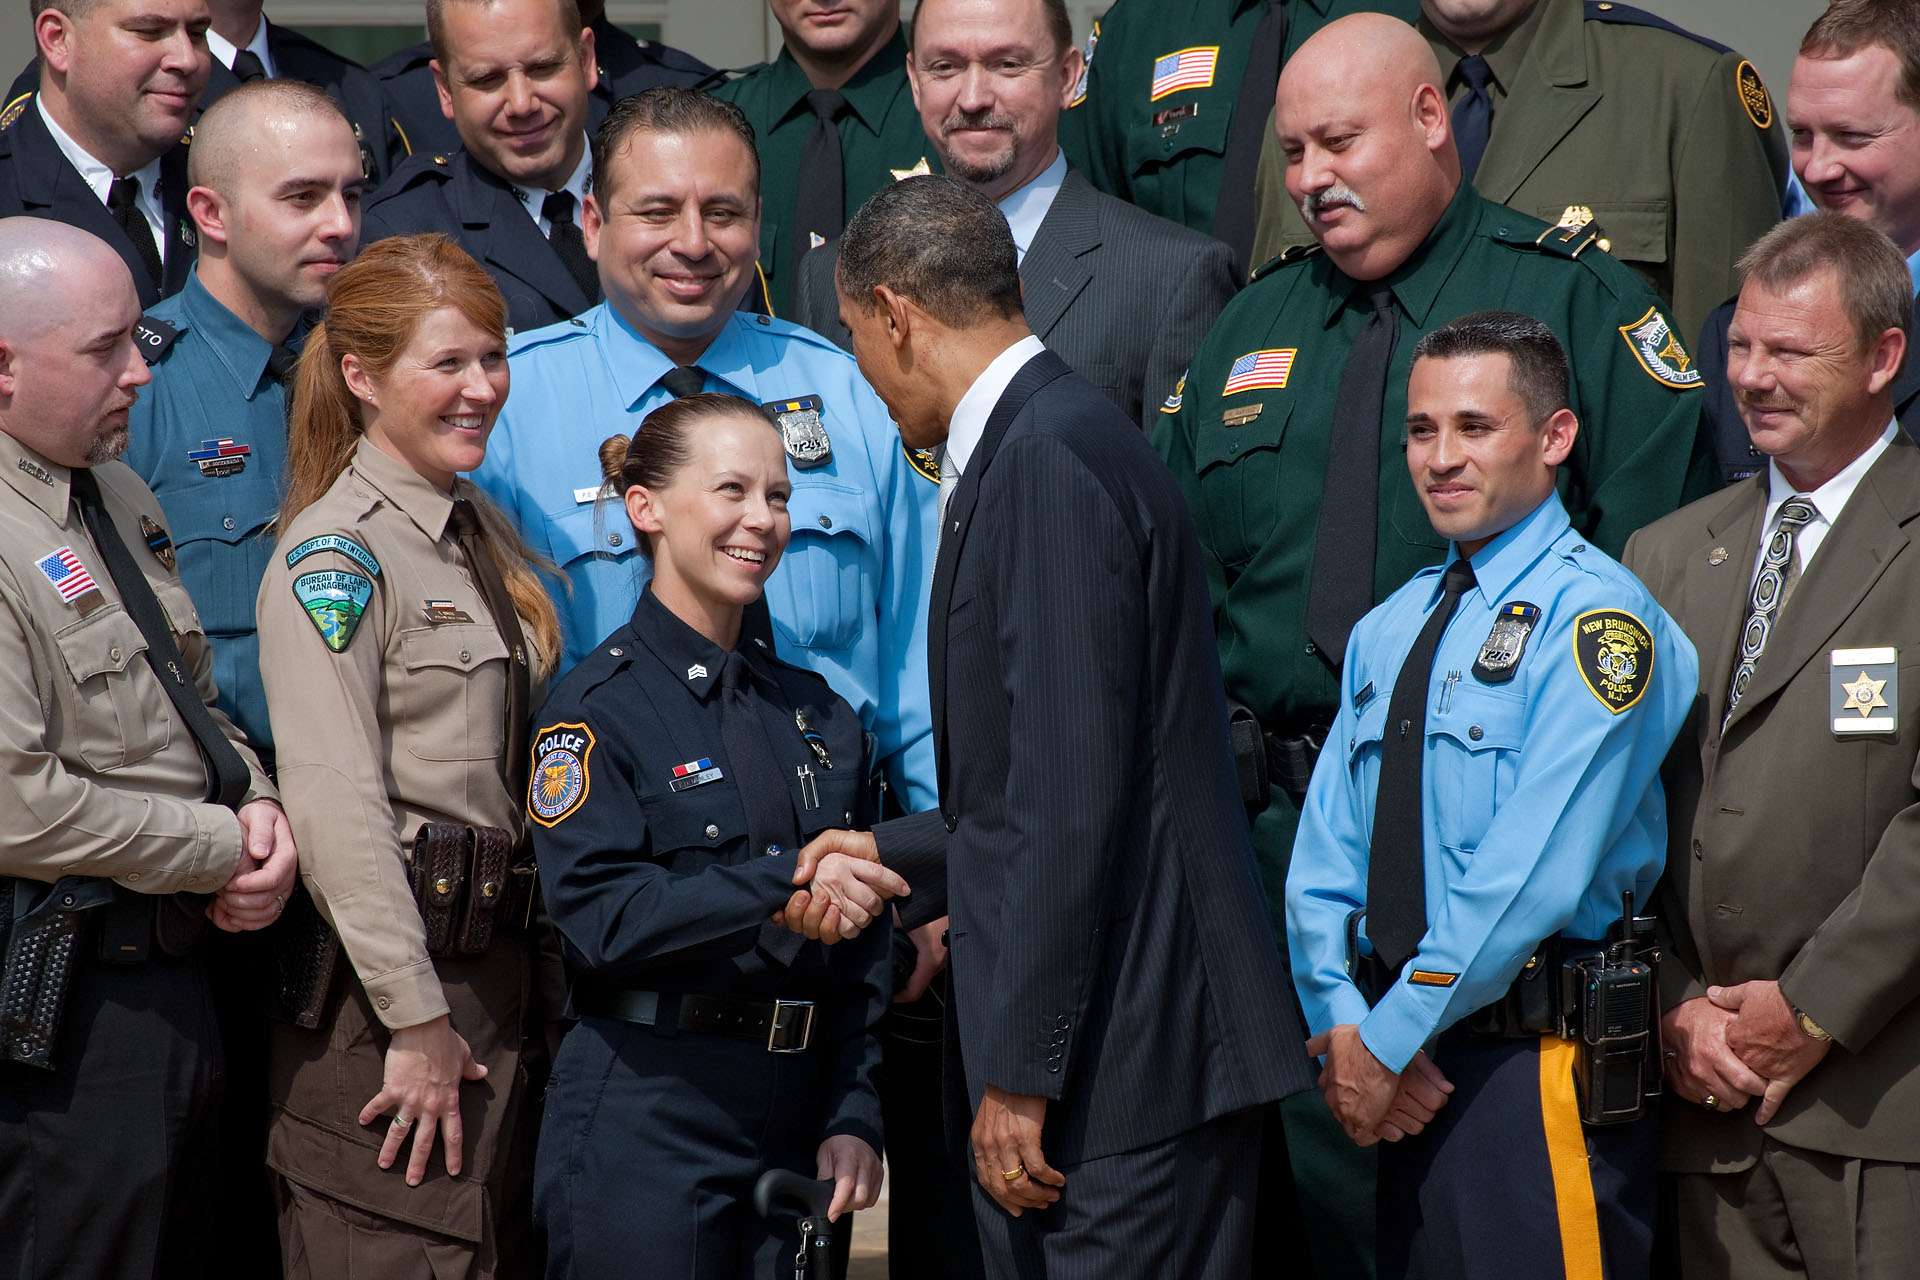 President Barack Obama talks with Sgt. Kimberly Munley